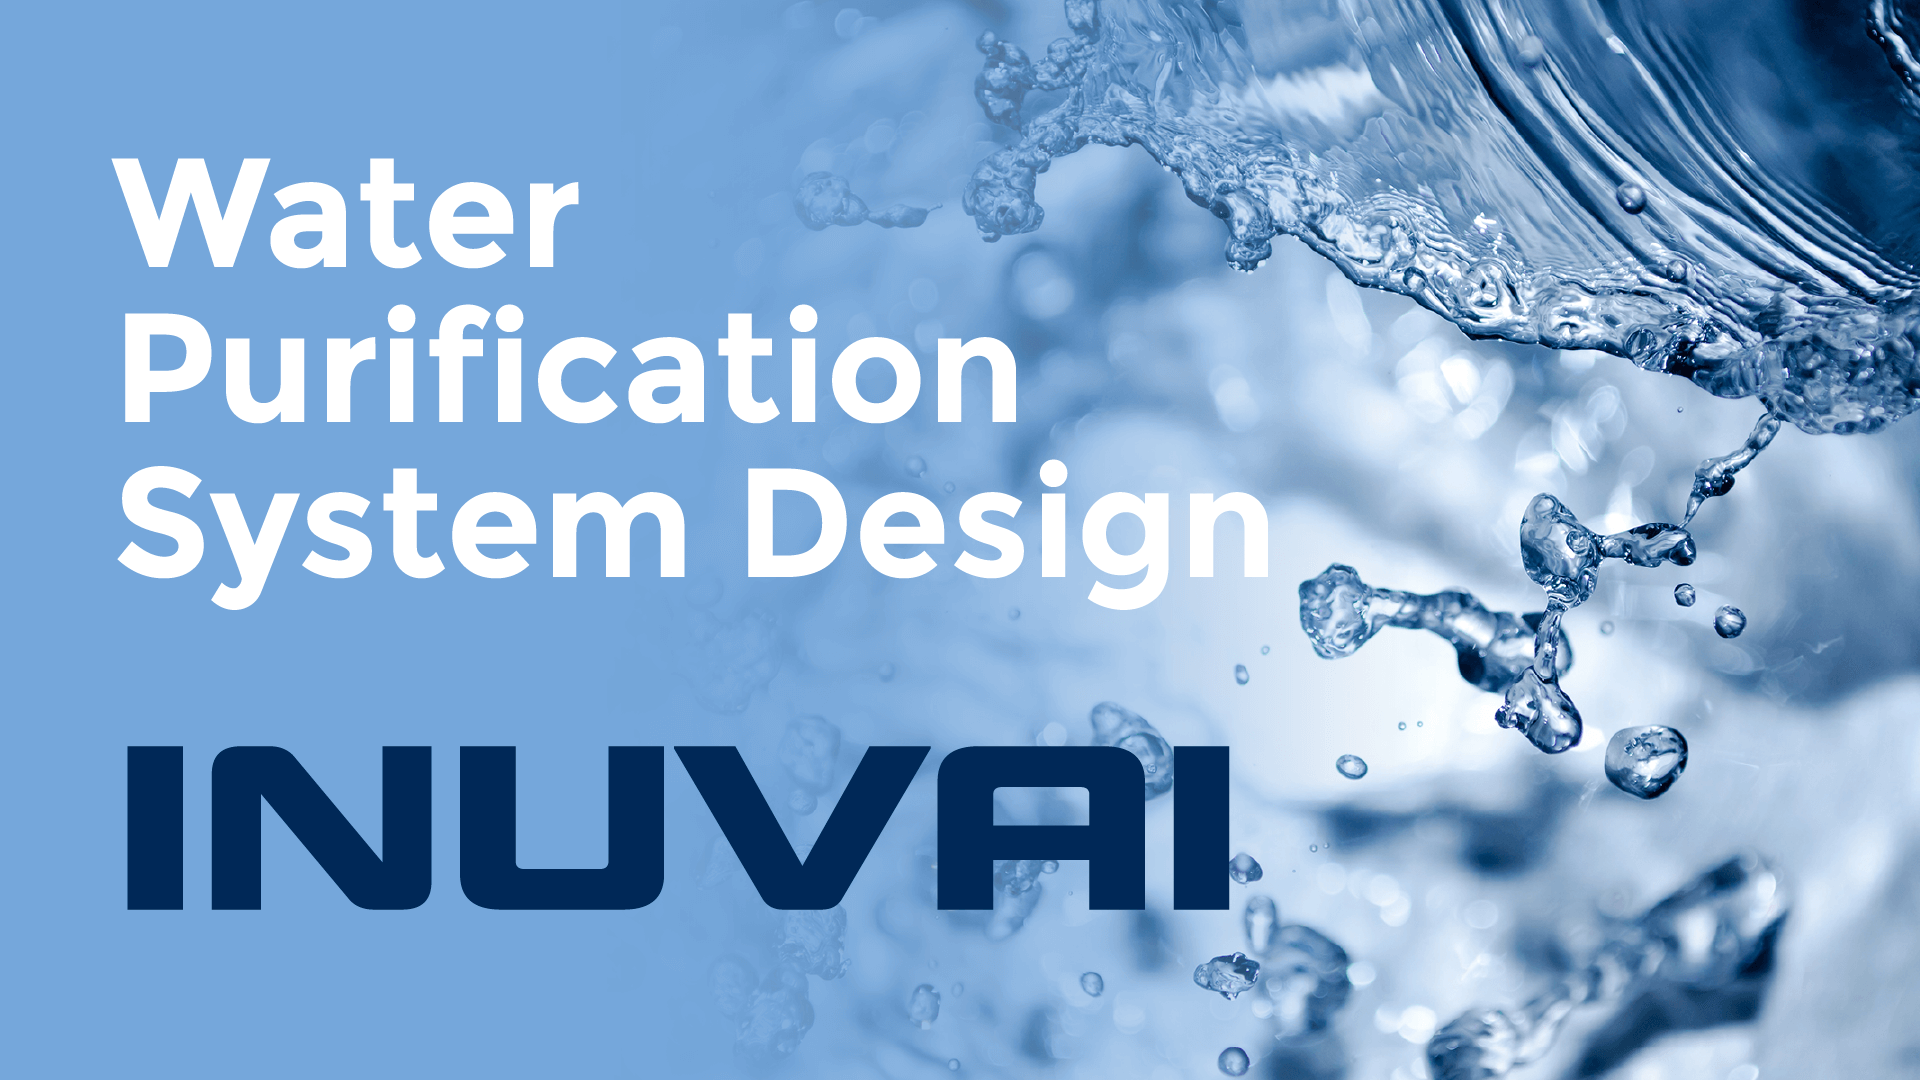 inuvai water purification system design